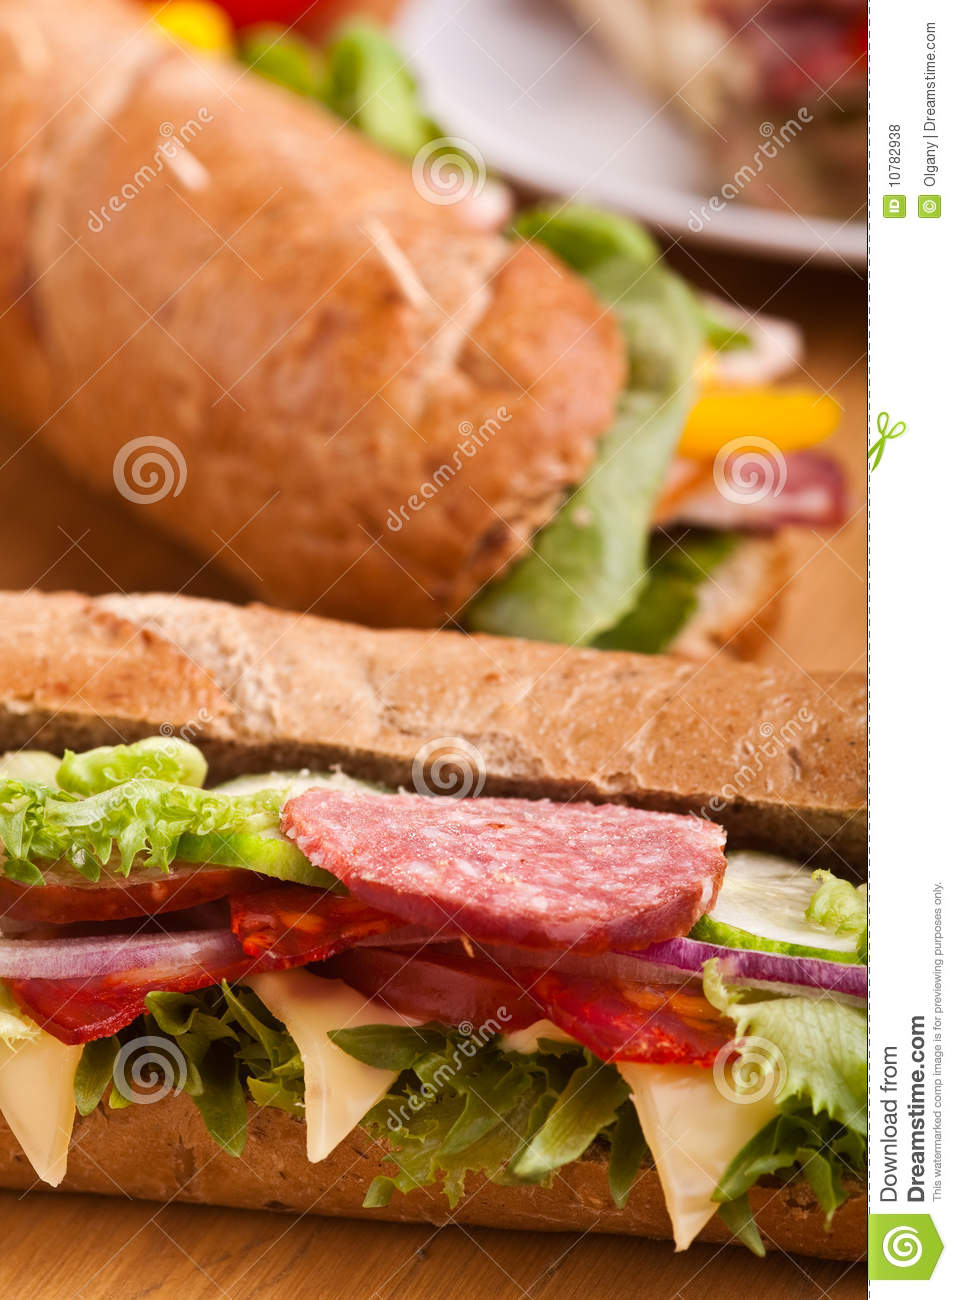 Lange subsandwiches